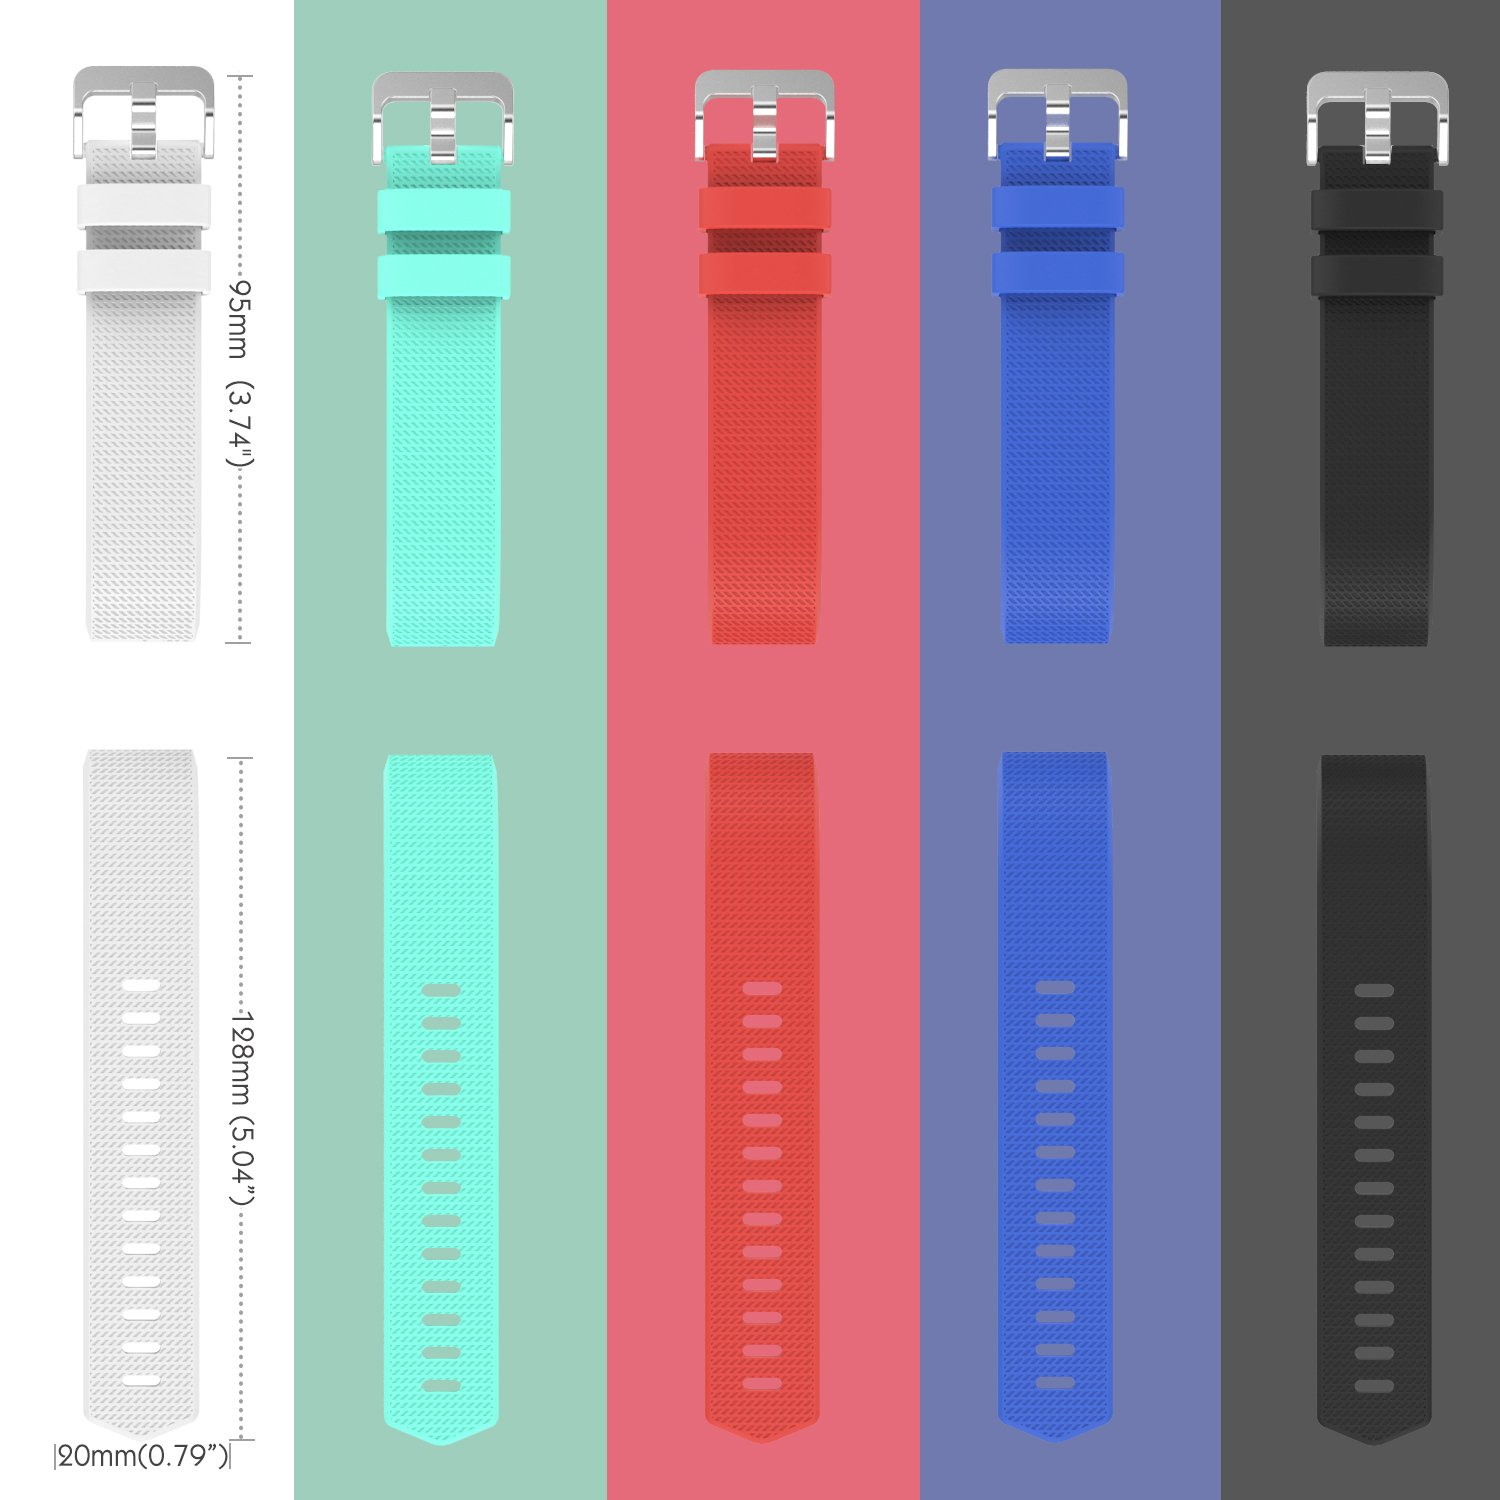 MoKo Soft Silicone Adjustable Replacement Sport Strap Band for Fitbit Charge 2 Smartwatch Heart Rate Fitness Wristband Wrist Length 5.70-8.26 145mm-210mm WHITE Fitbit Charge 2 Accessory Band